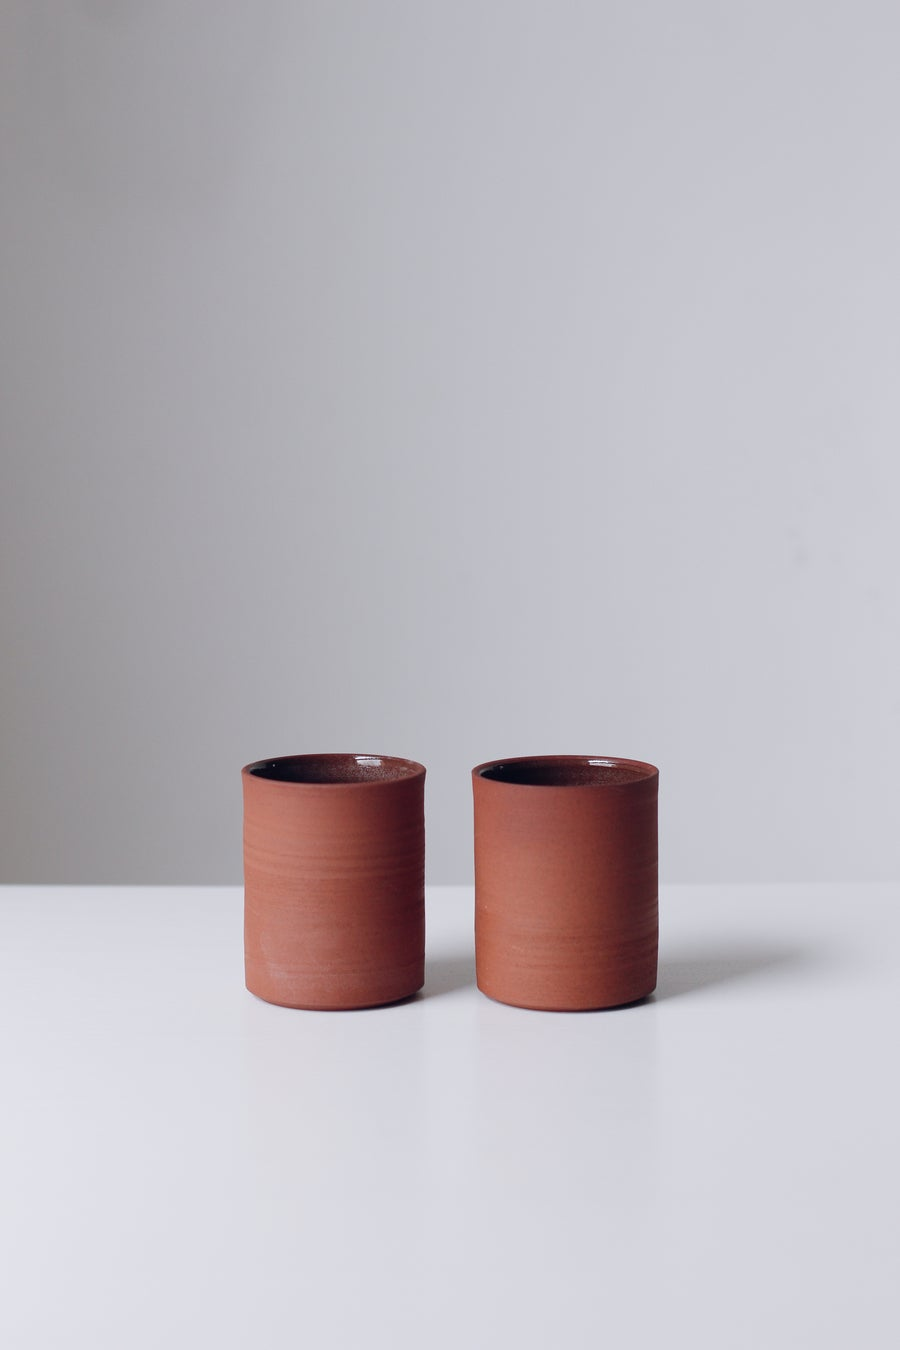 Image of Pair of Terracotta Tumblers